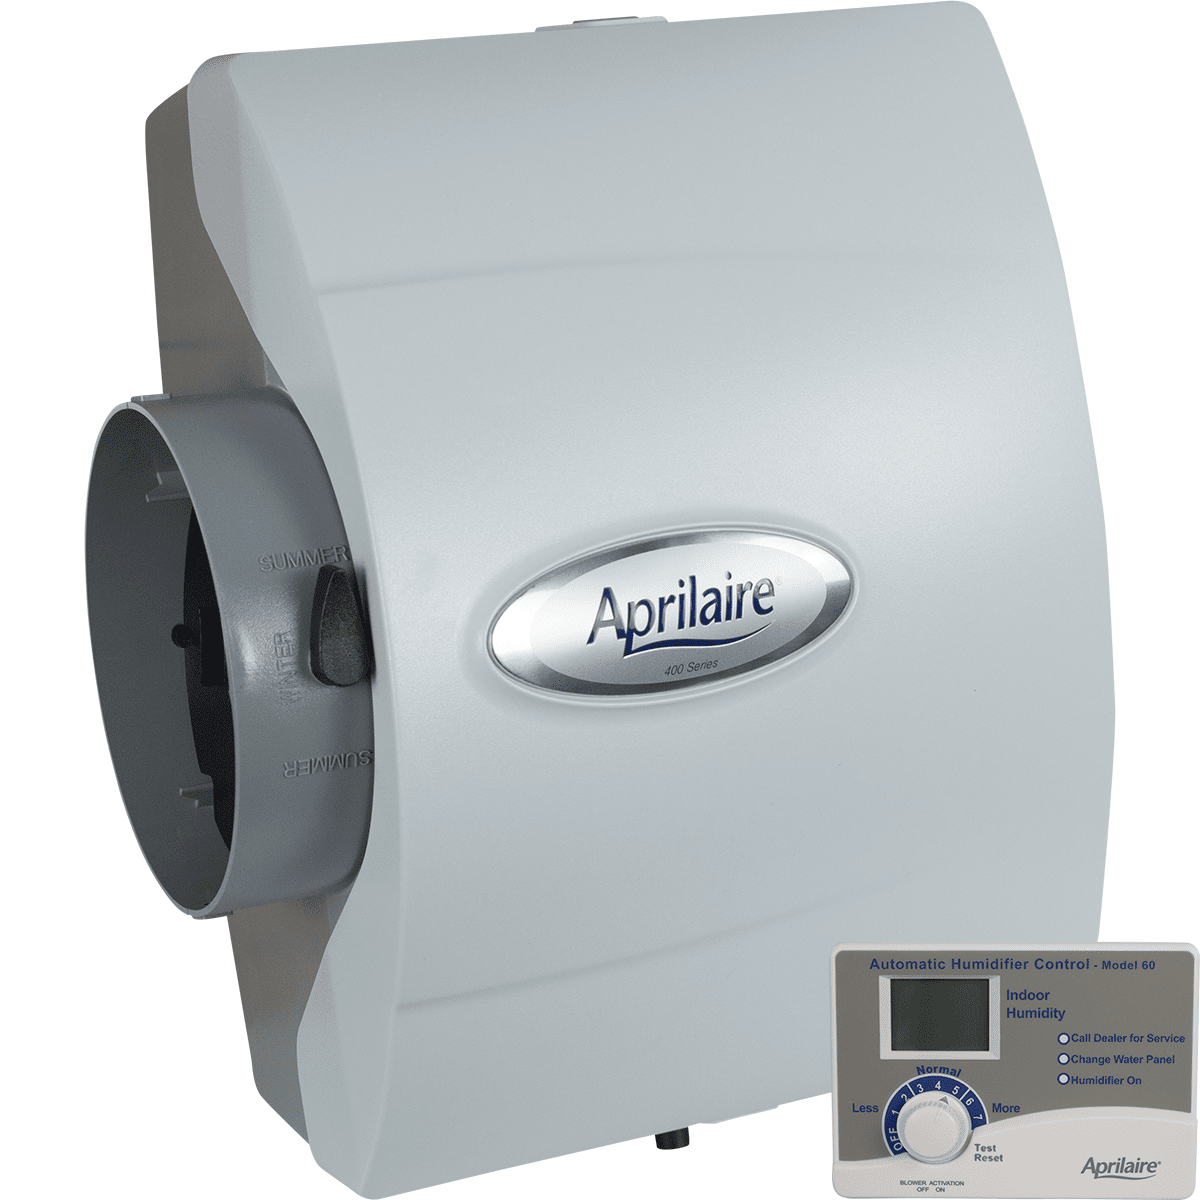 Image of Aprilaire 400 Drainless Bypass Humidifier - Auto Digital Control